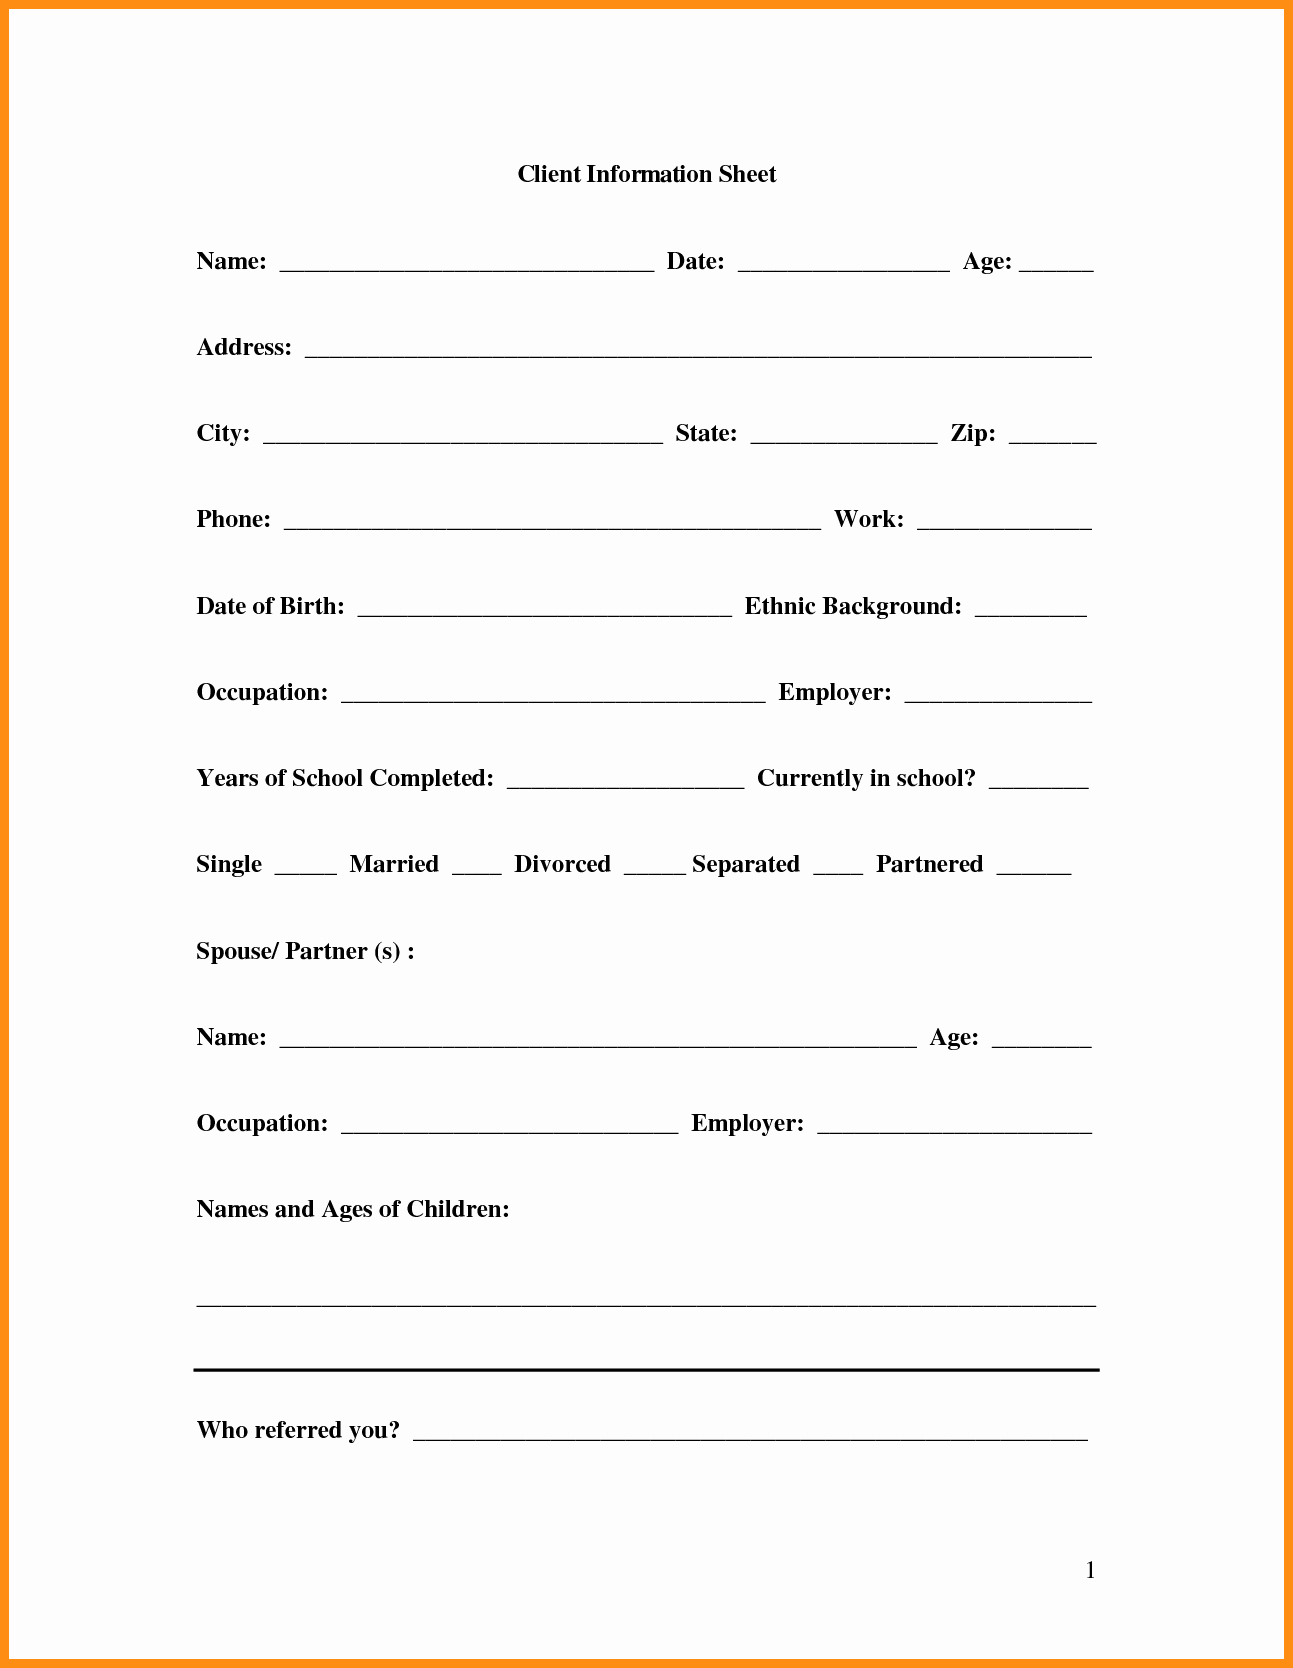 Contact Information form Template Word Awesome Customer Contact form Template Of Law